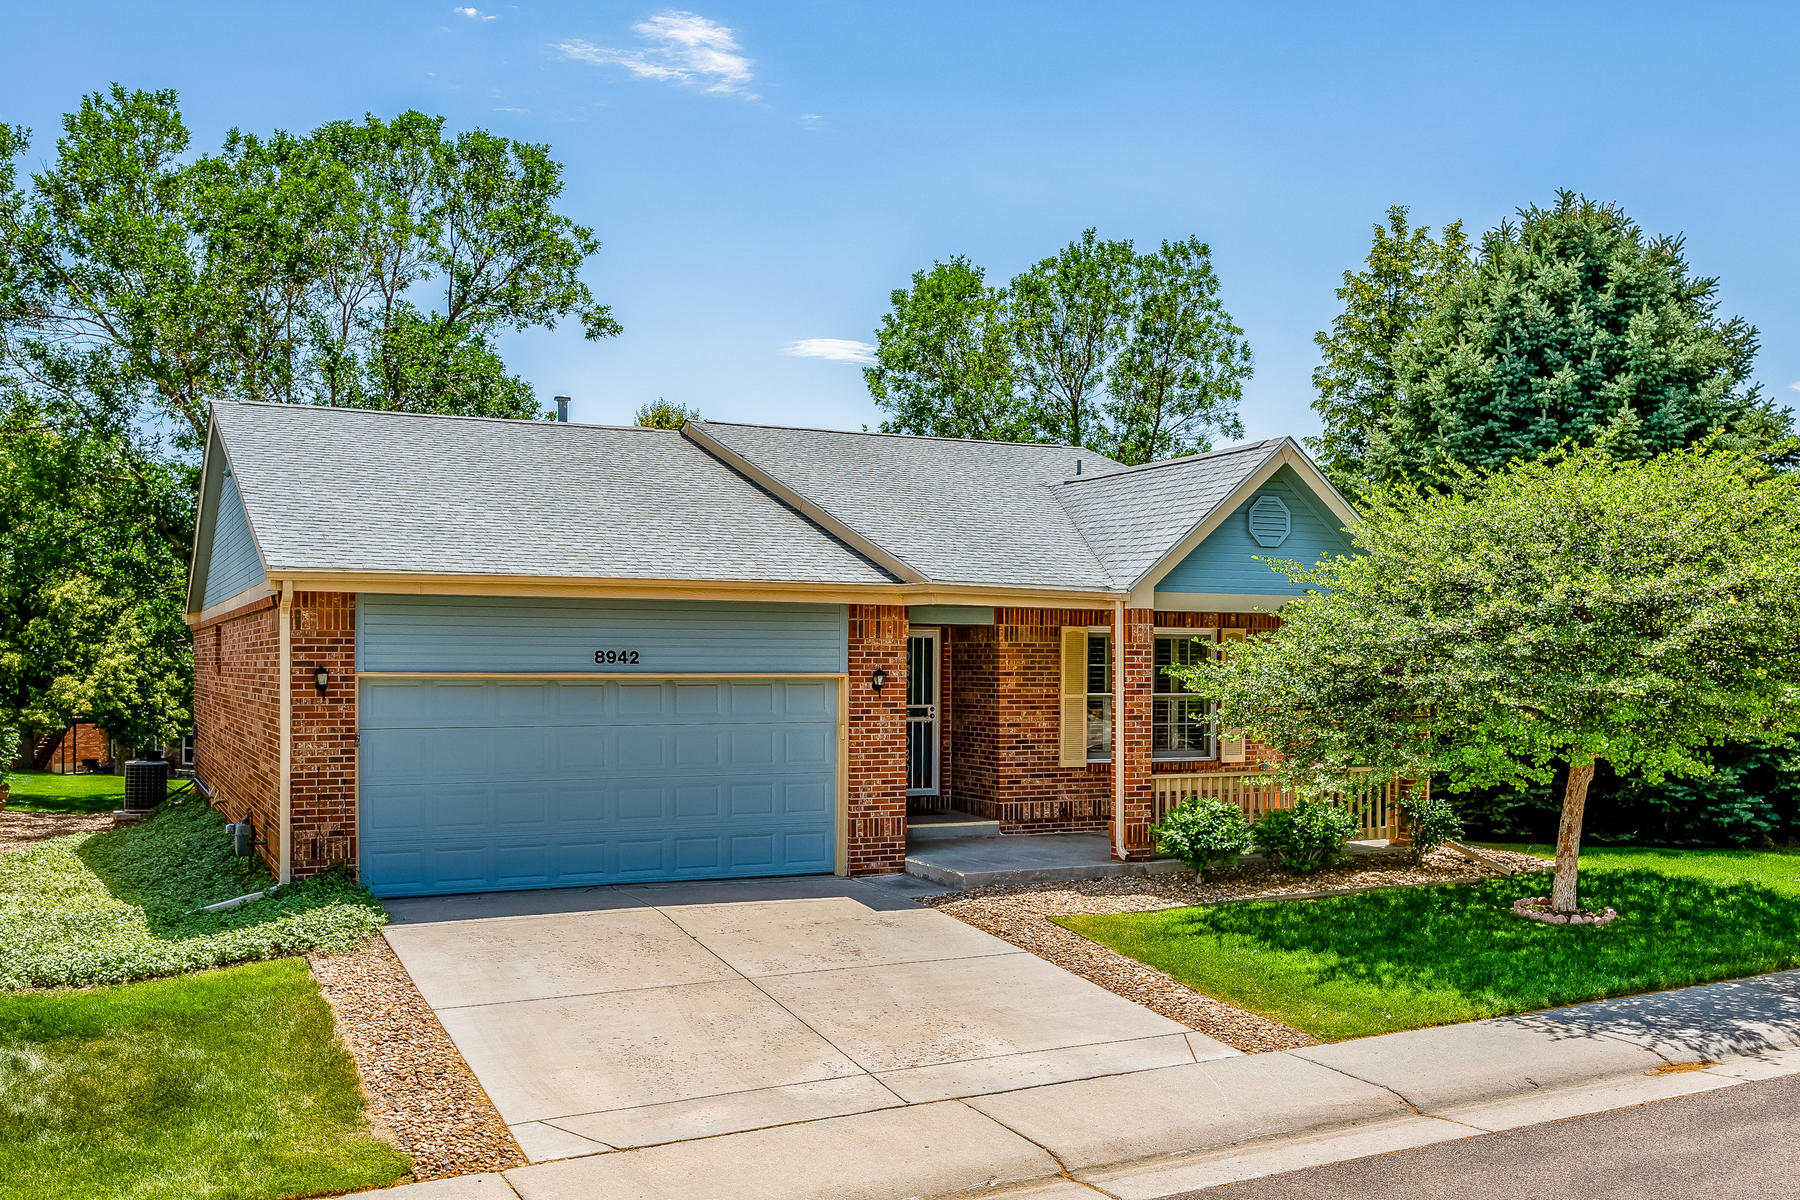 Great Opportunity for a Low Maintenance Patio Home